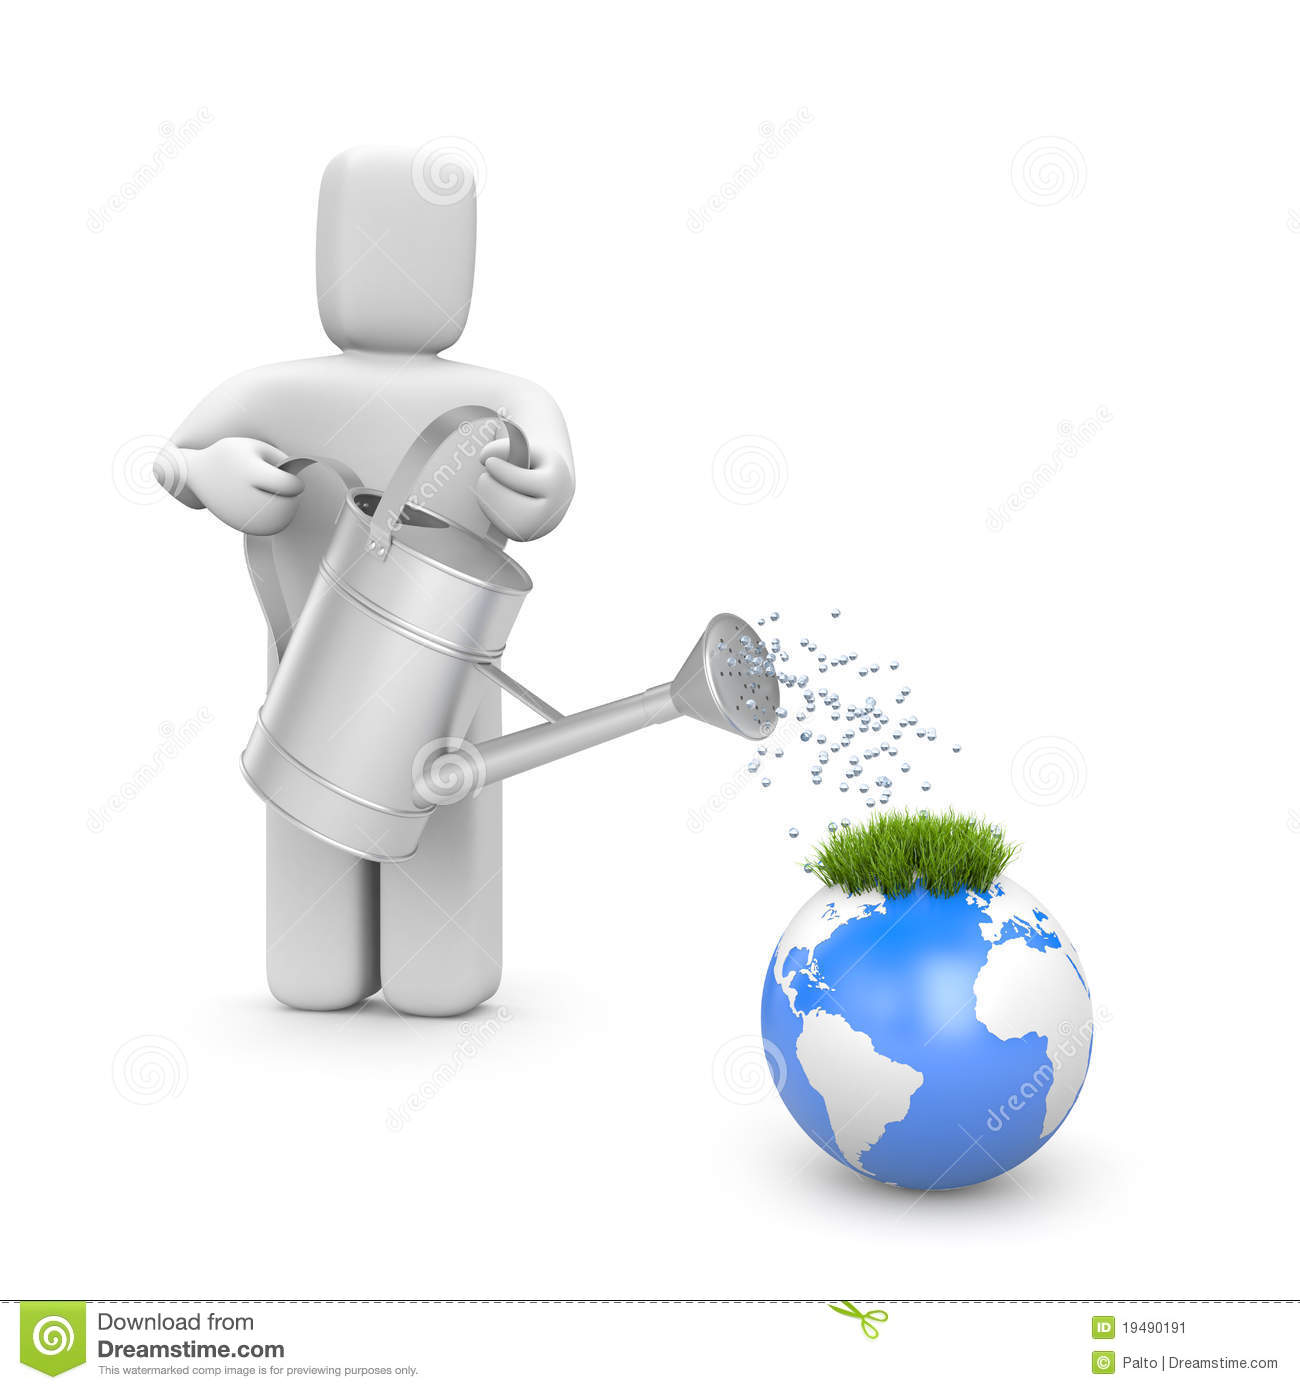 essay on conservation of environment buy paper dreamstime com